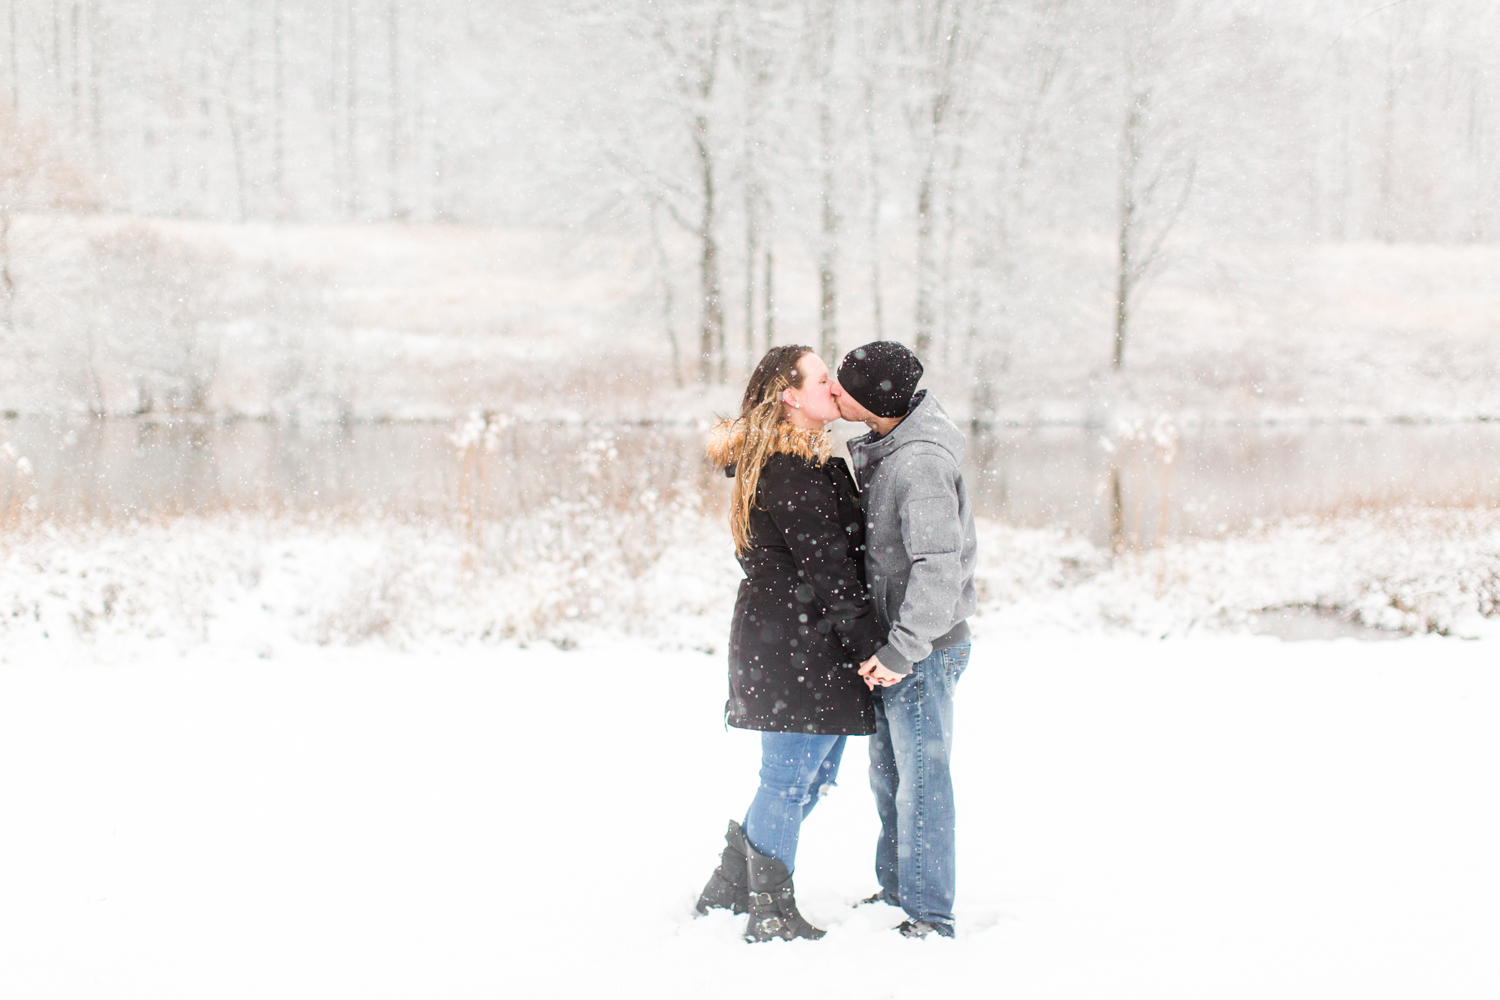 twin-brooks-park-winter-snow-engagement-session-trumbull-ct-top-connecticut-nyc-westchester-destination-wedding-engagement-boudoir-photographer-shaina-lee-photography-photo-45.jpg